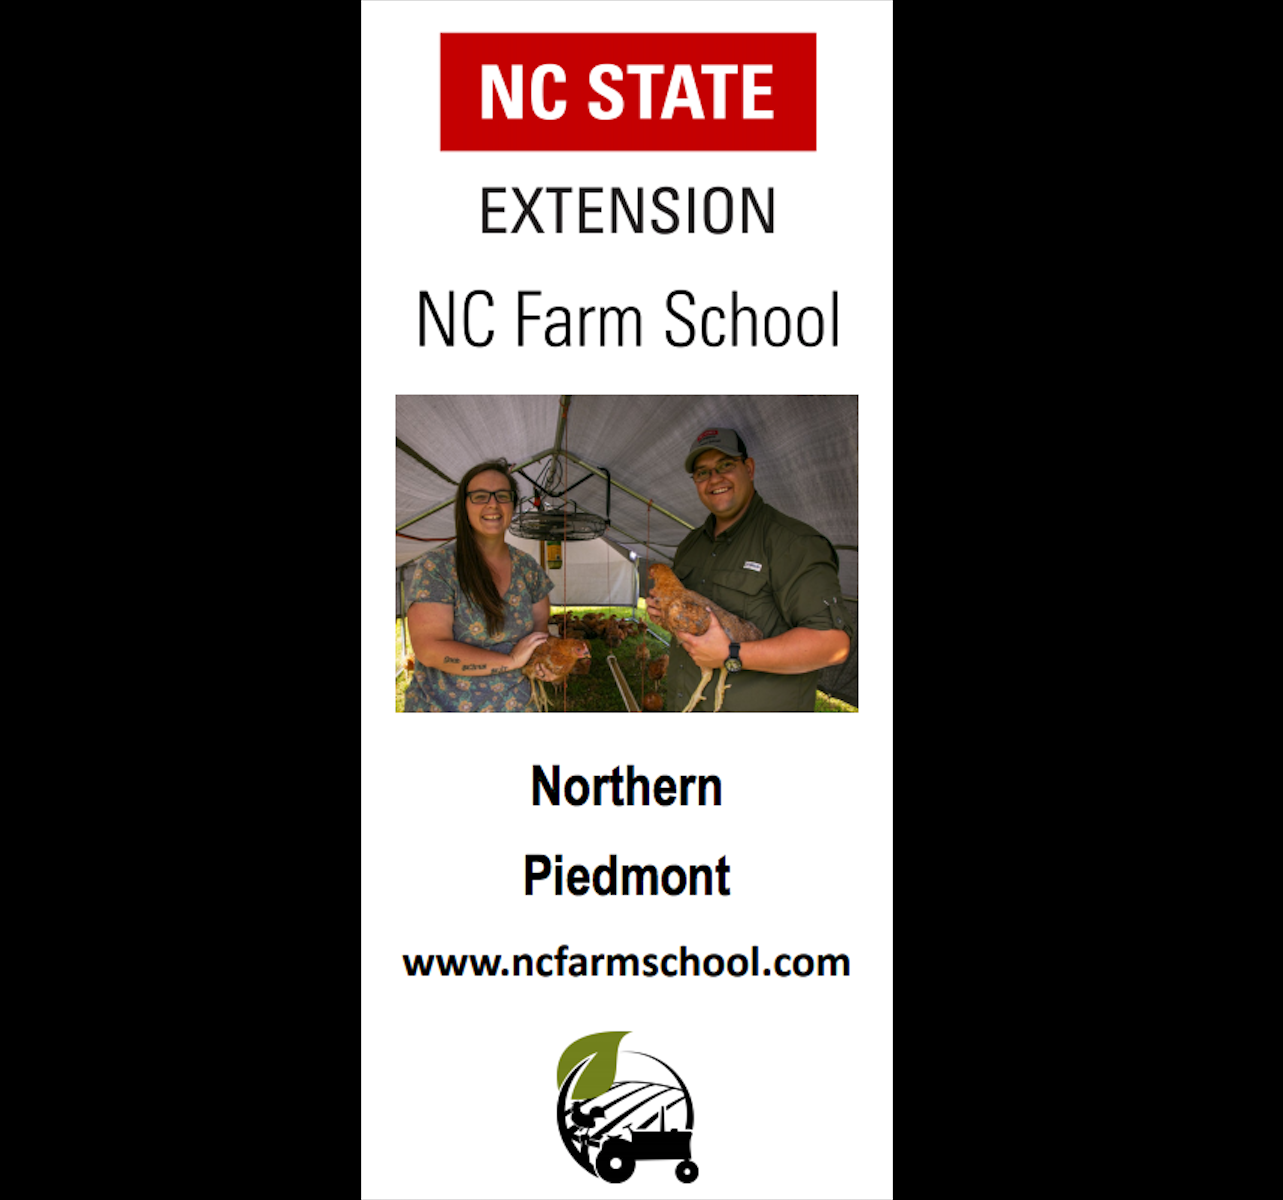 NC Farm School Northern Piedmont (Roxboro) Starting in January 2020